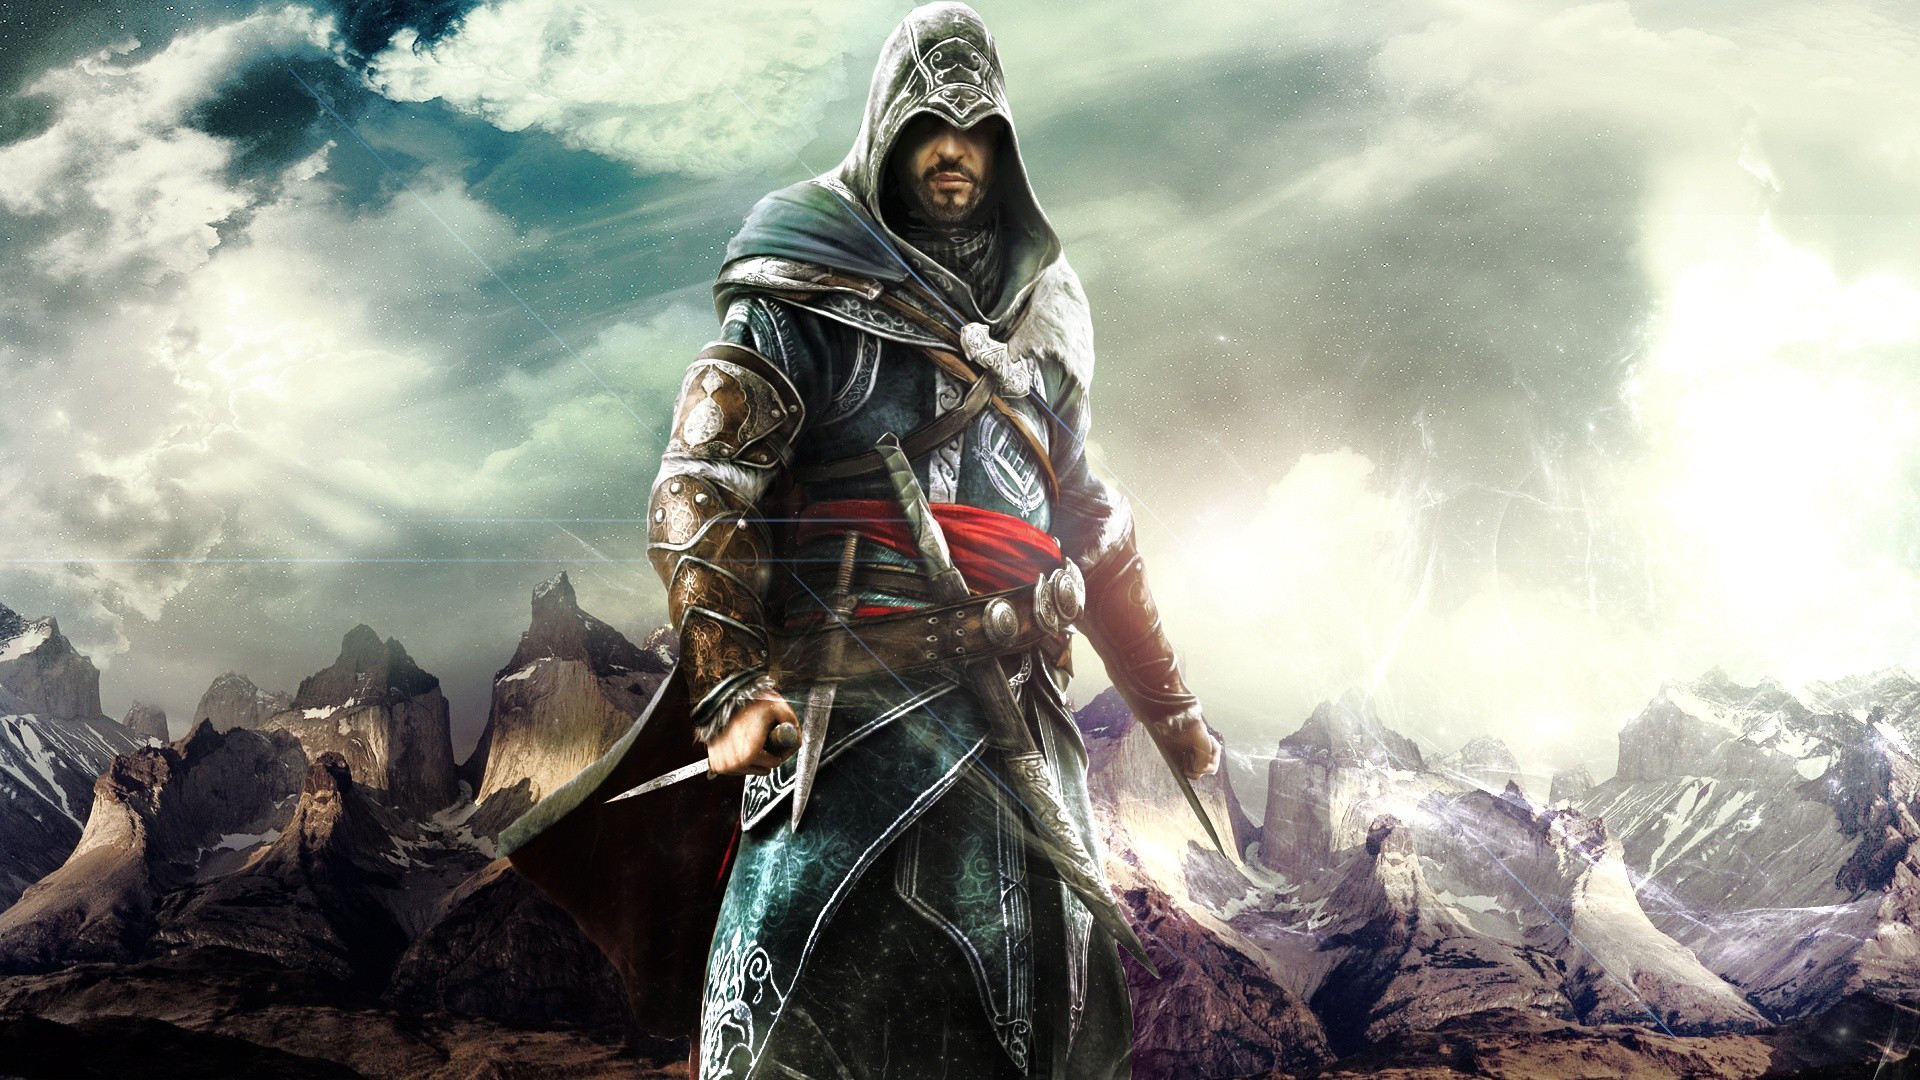 Cool Wallpapers Games